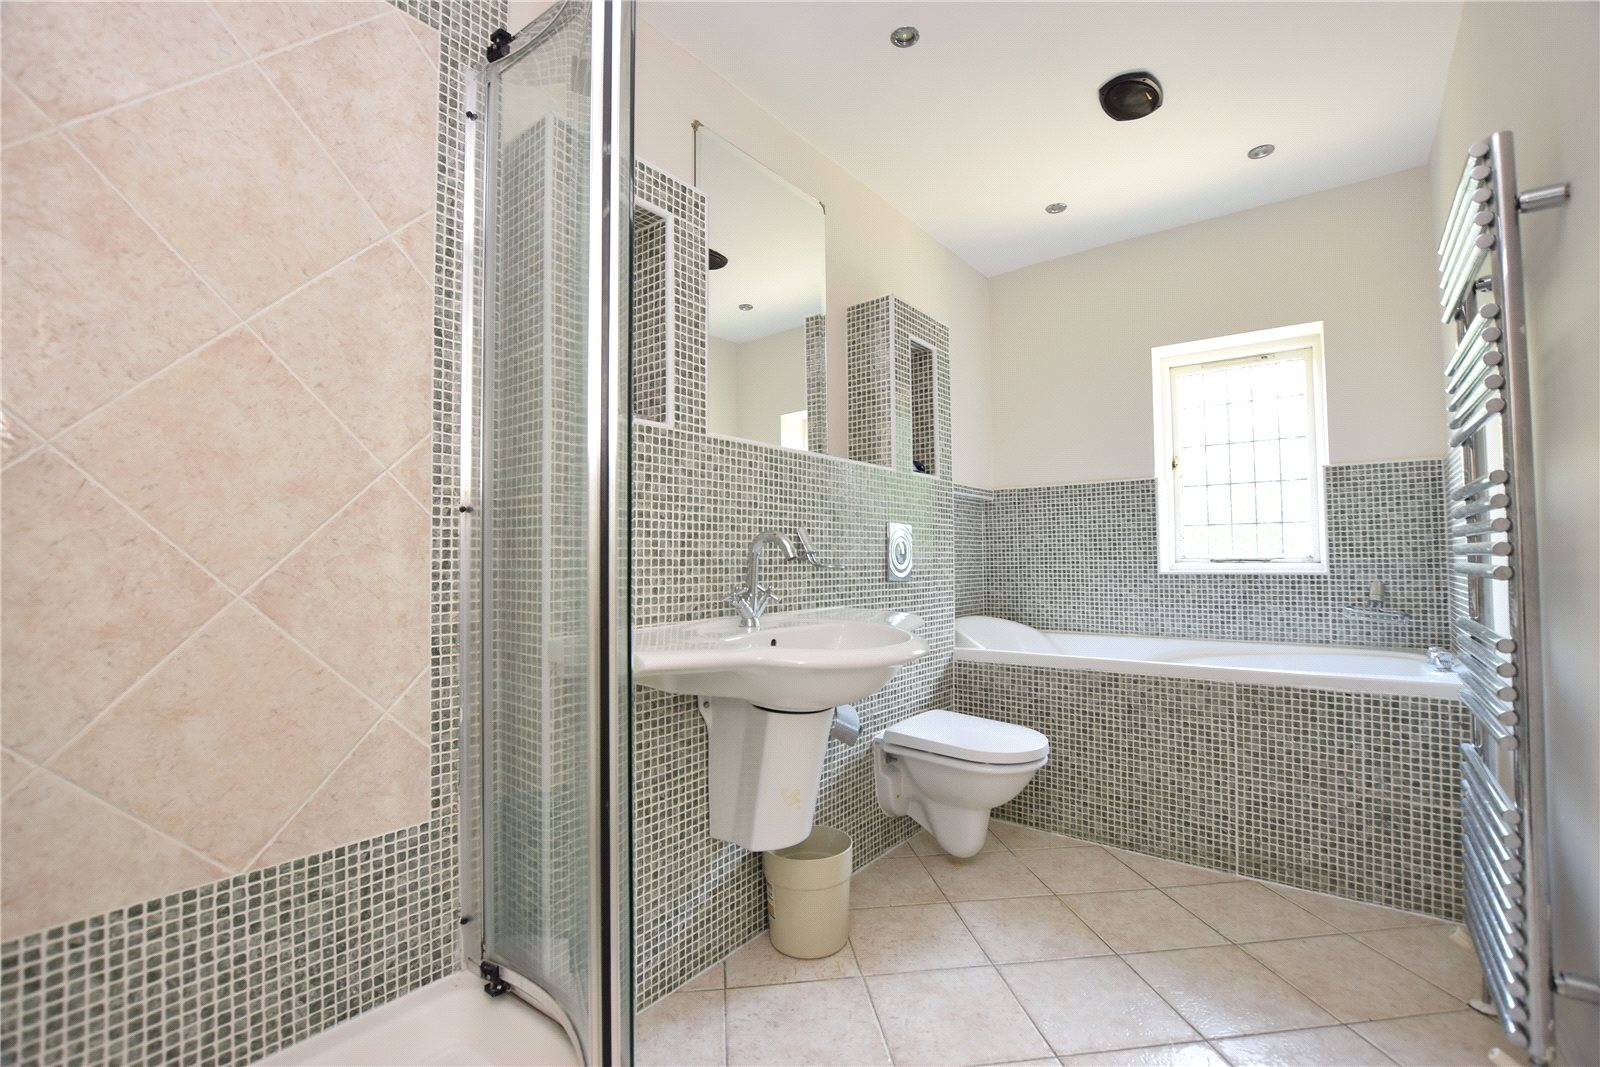 property to let in west yorkshire, bathroom